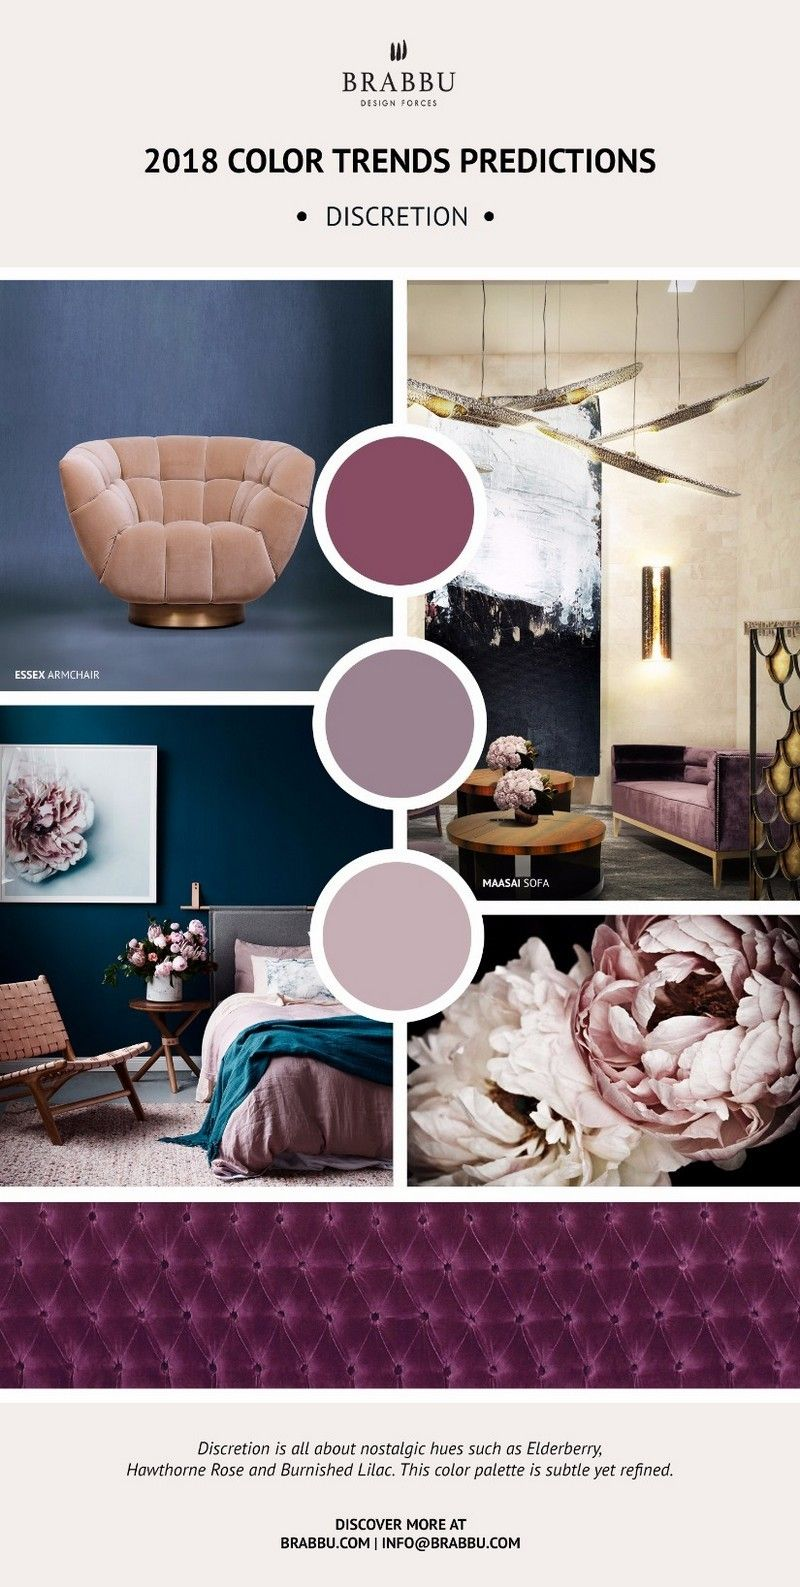 Pin by maryam afify on bedroom ideas pinterest color trends